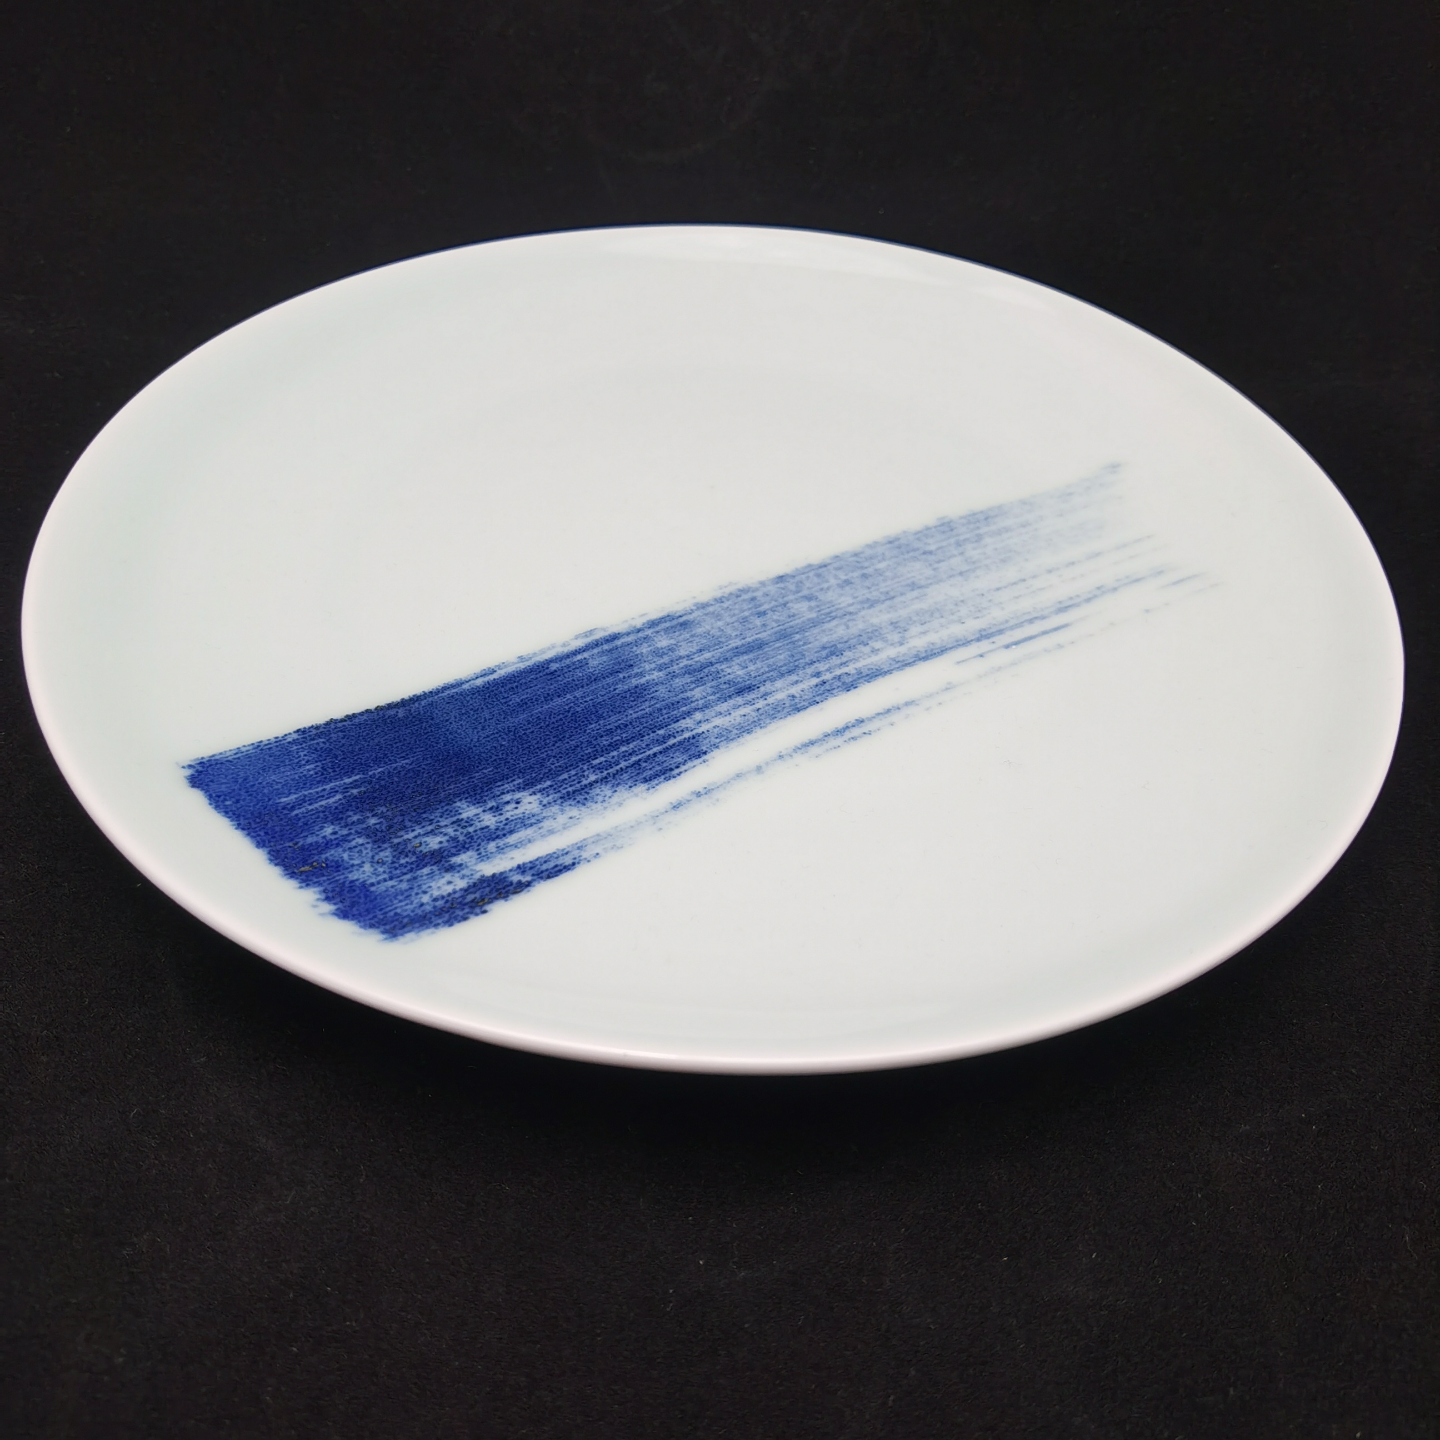 China Blue Brush Stroke Round Plate - (330mm)